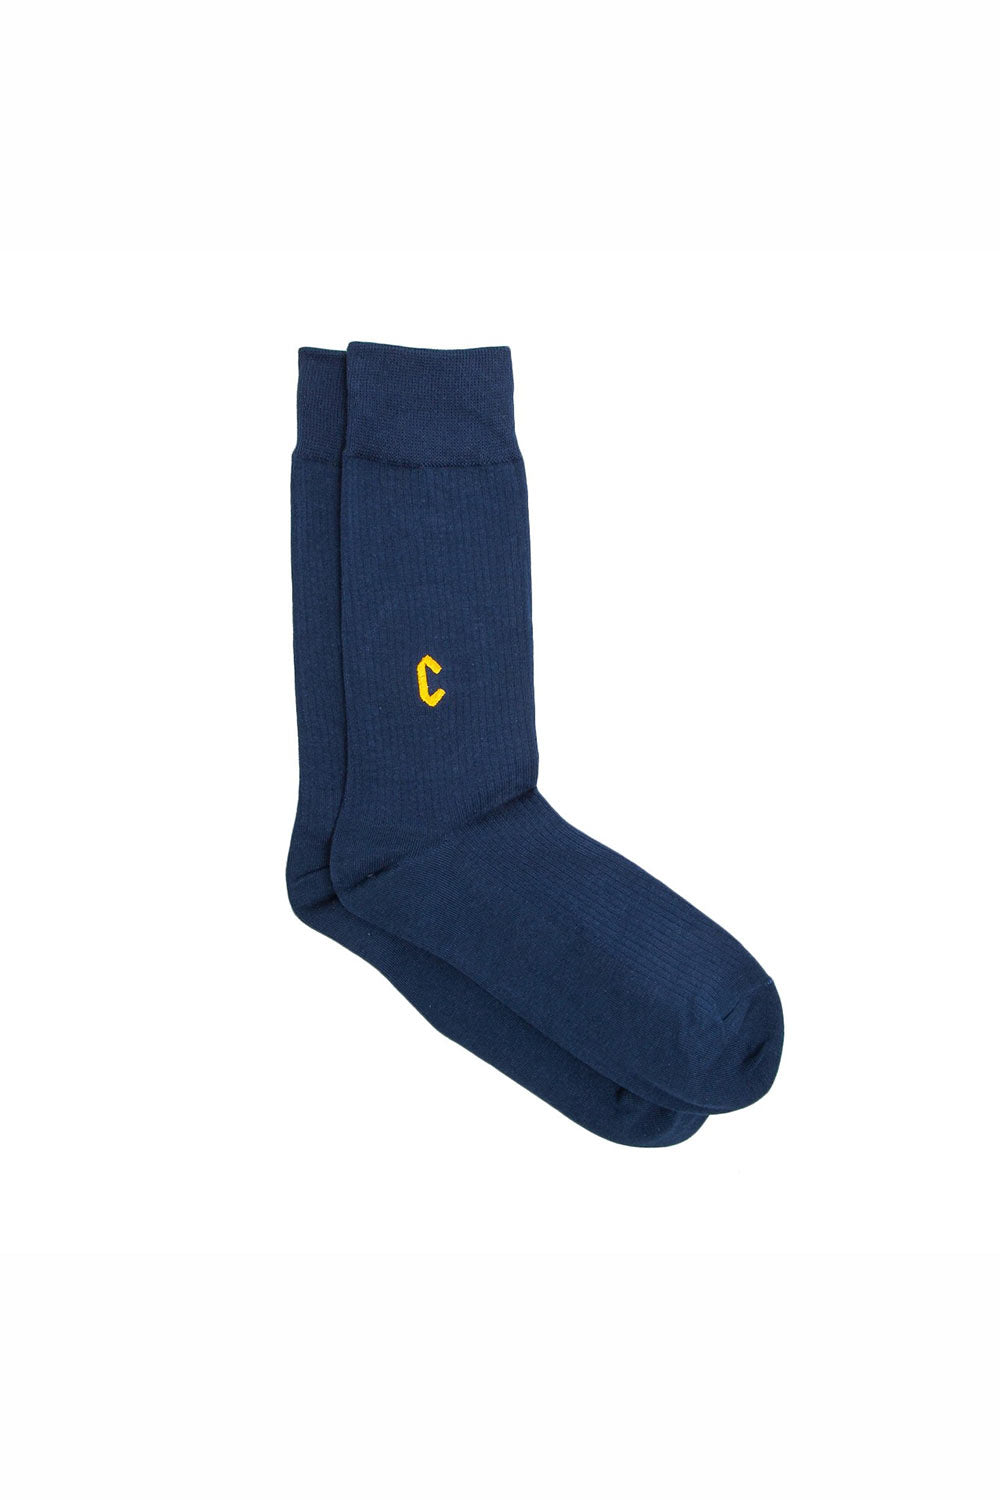 Chrystie NYC Casual Socks | Buy Chrystie NYC Accesories Online